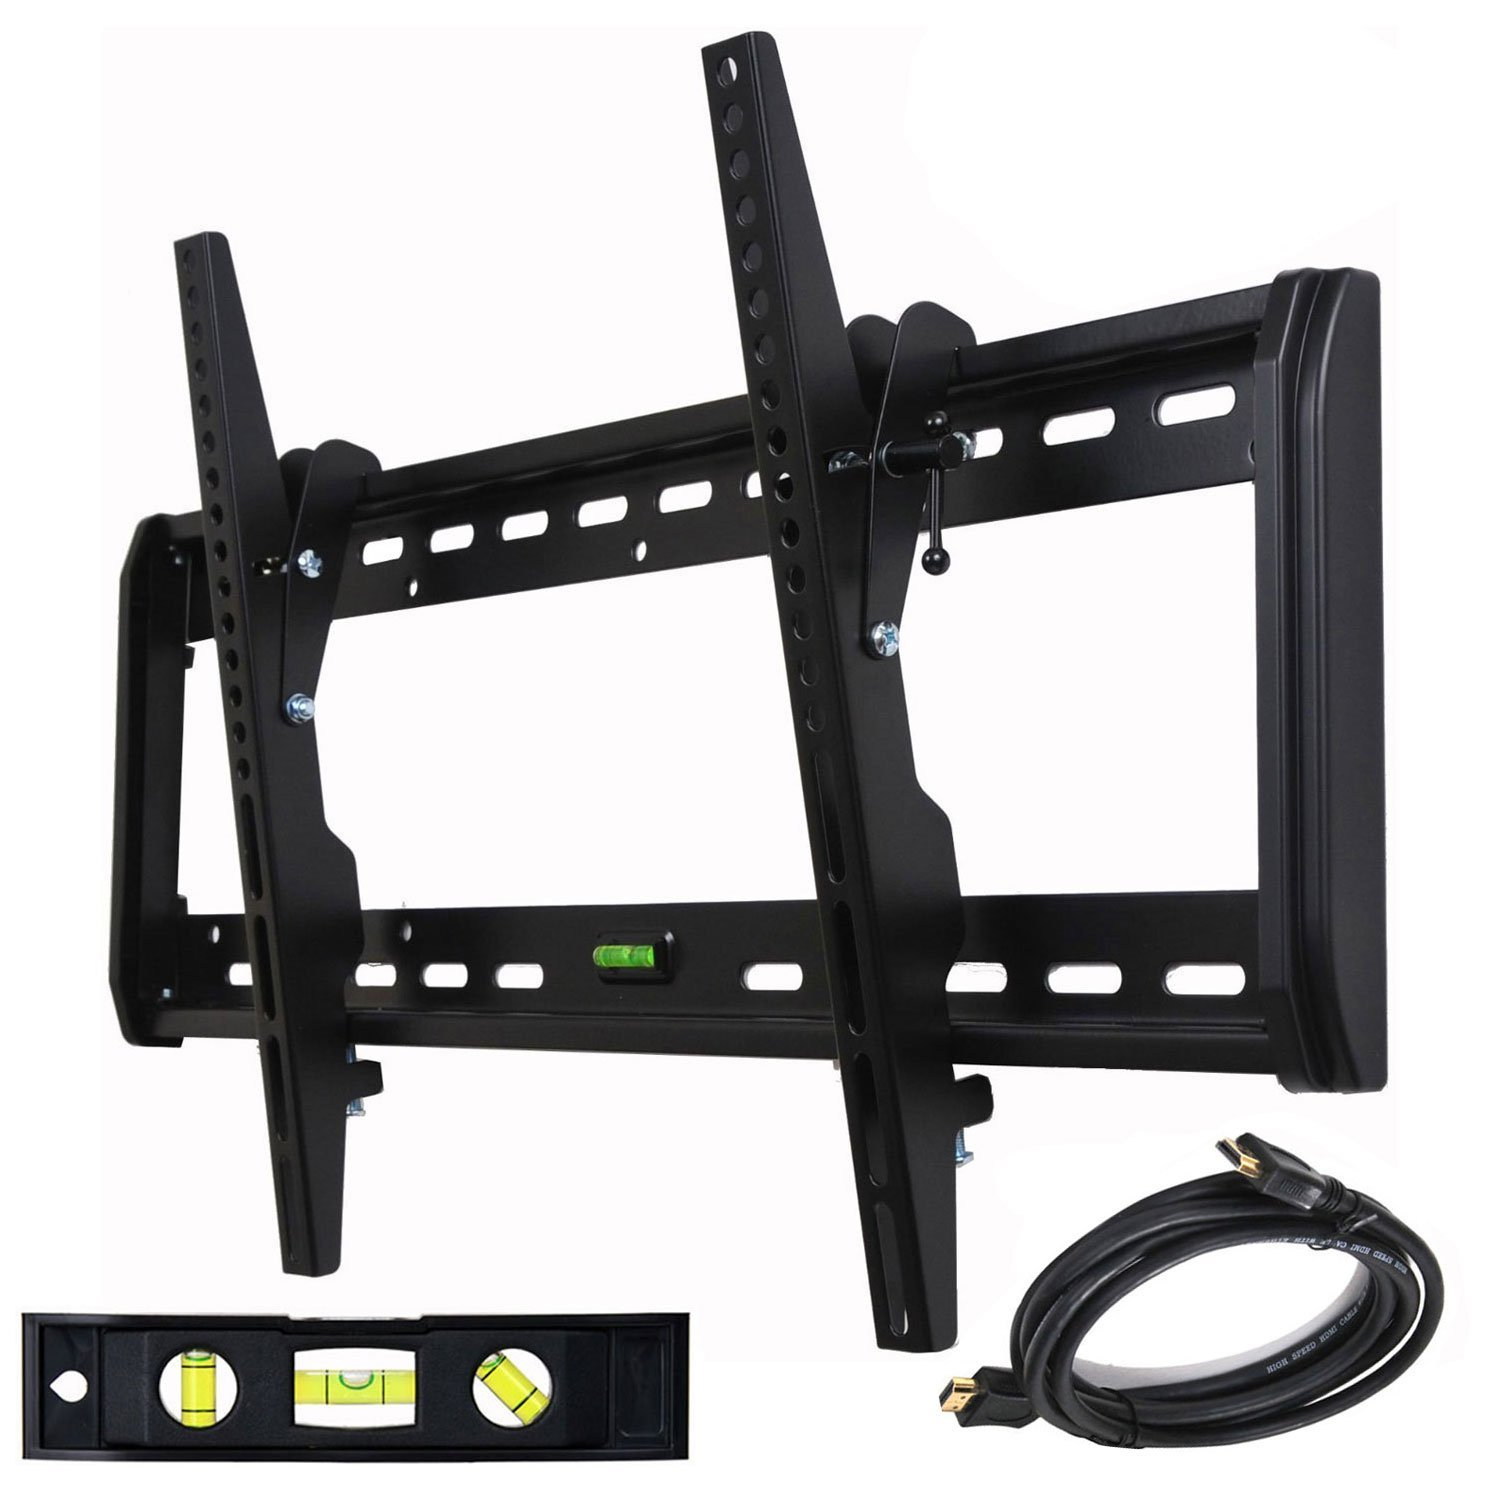 VideoSecu Tilt TV Wall Mount for 32 40 50 58 65 inch Tosh...